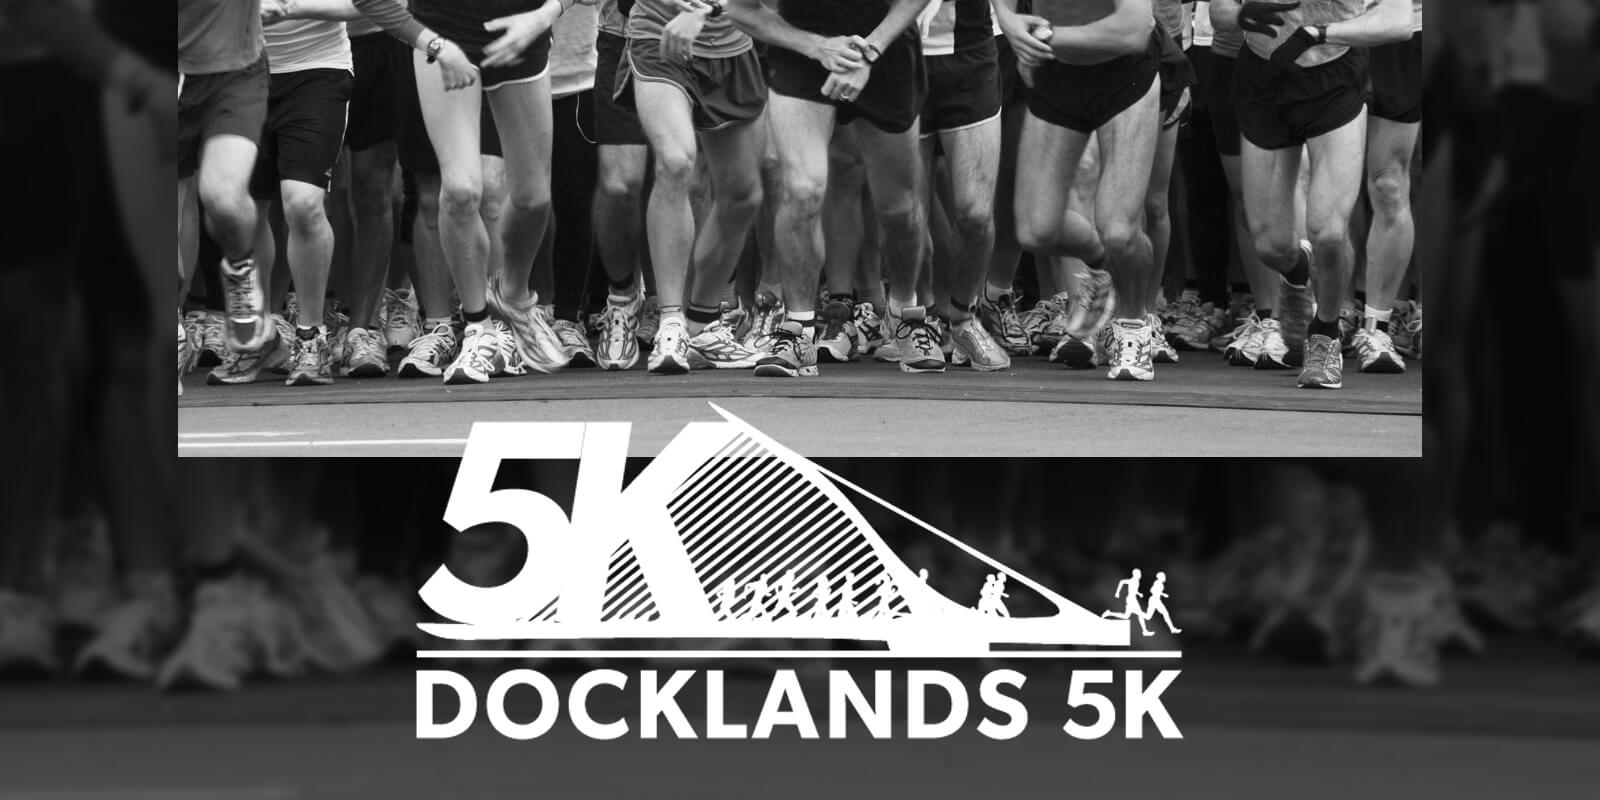 Docklands 5K Run